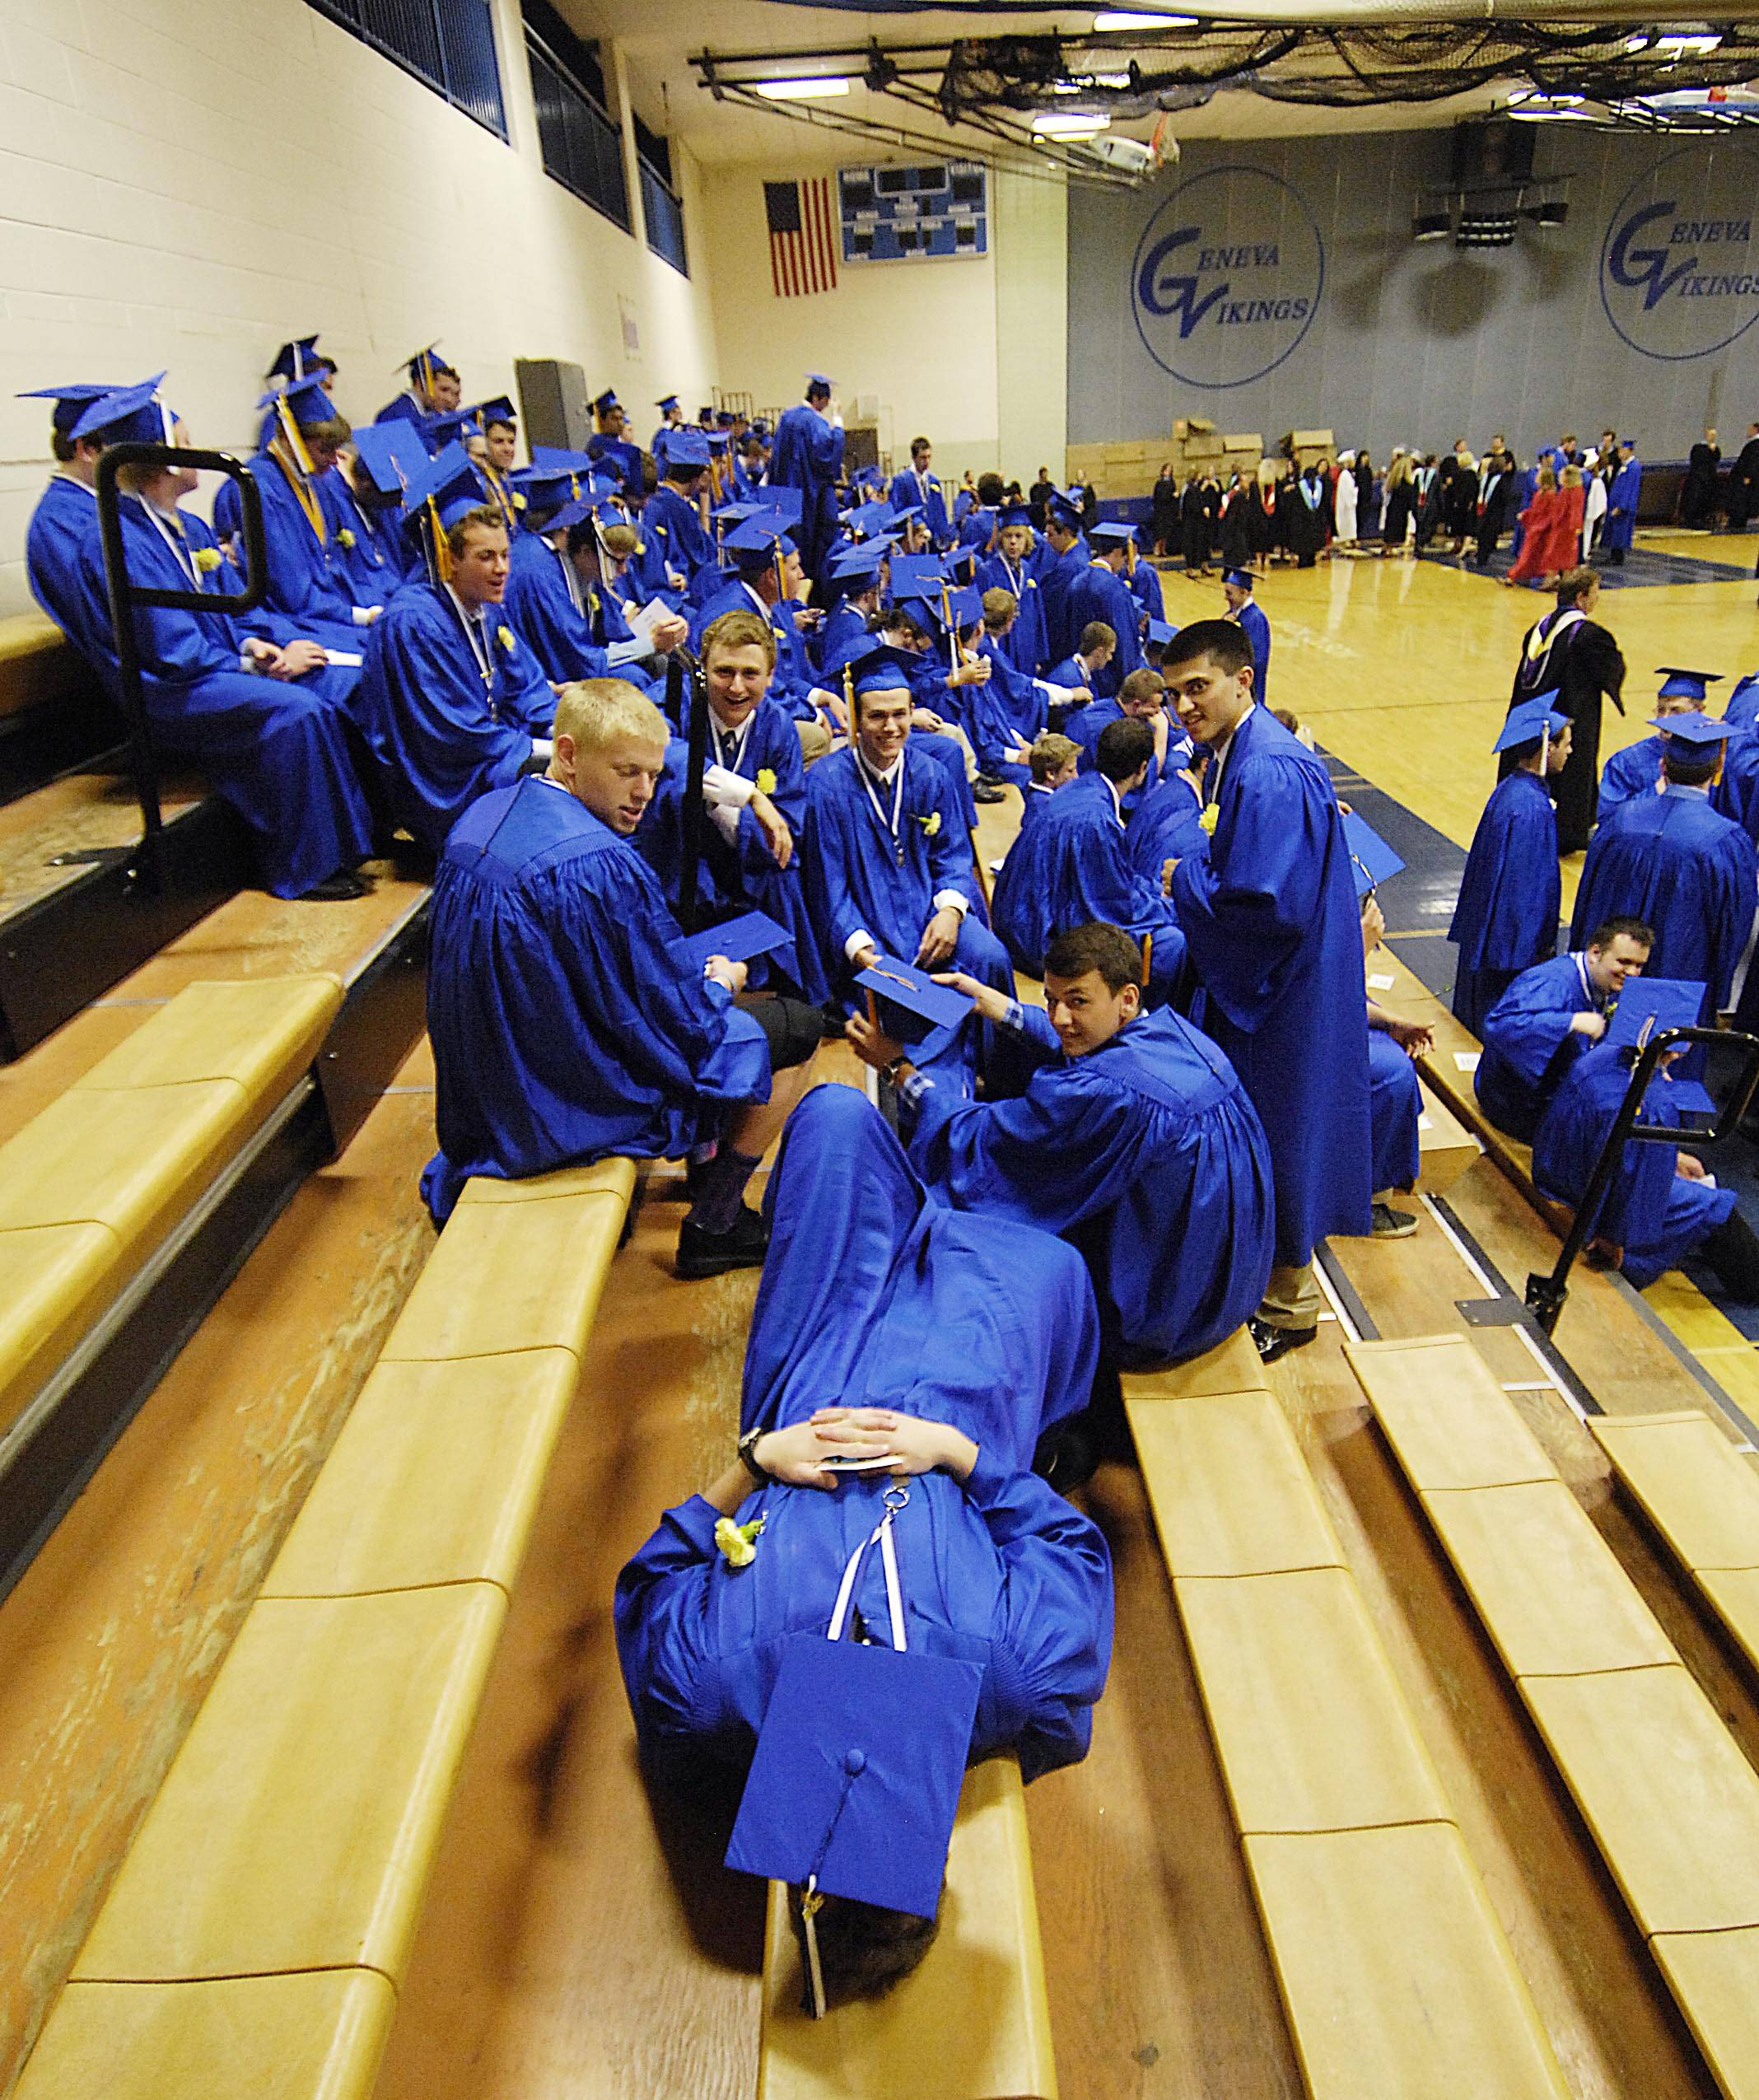 Graduate Ethan Garrity lays back with his mortarboard covering his eyes as he waits with classmates before the Geneva High School 2014 commencement exercises Sunday.